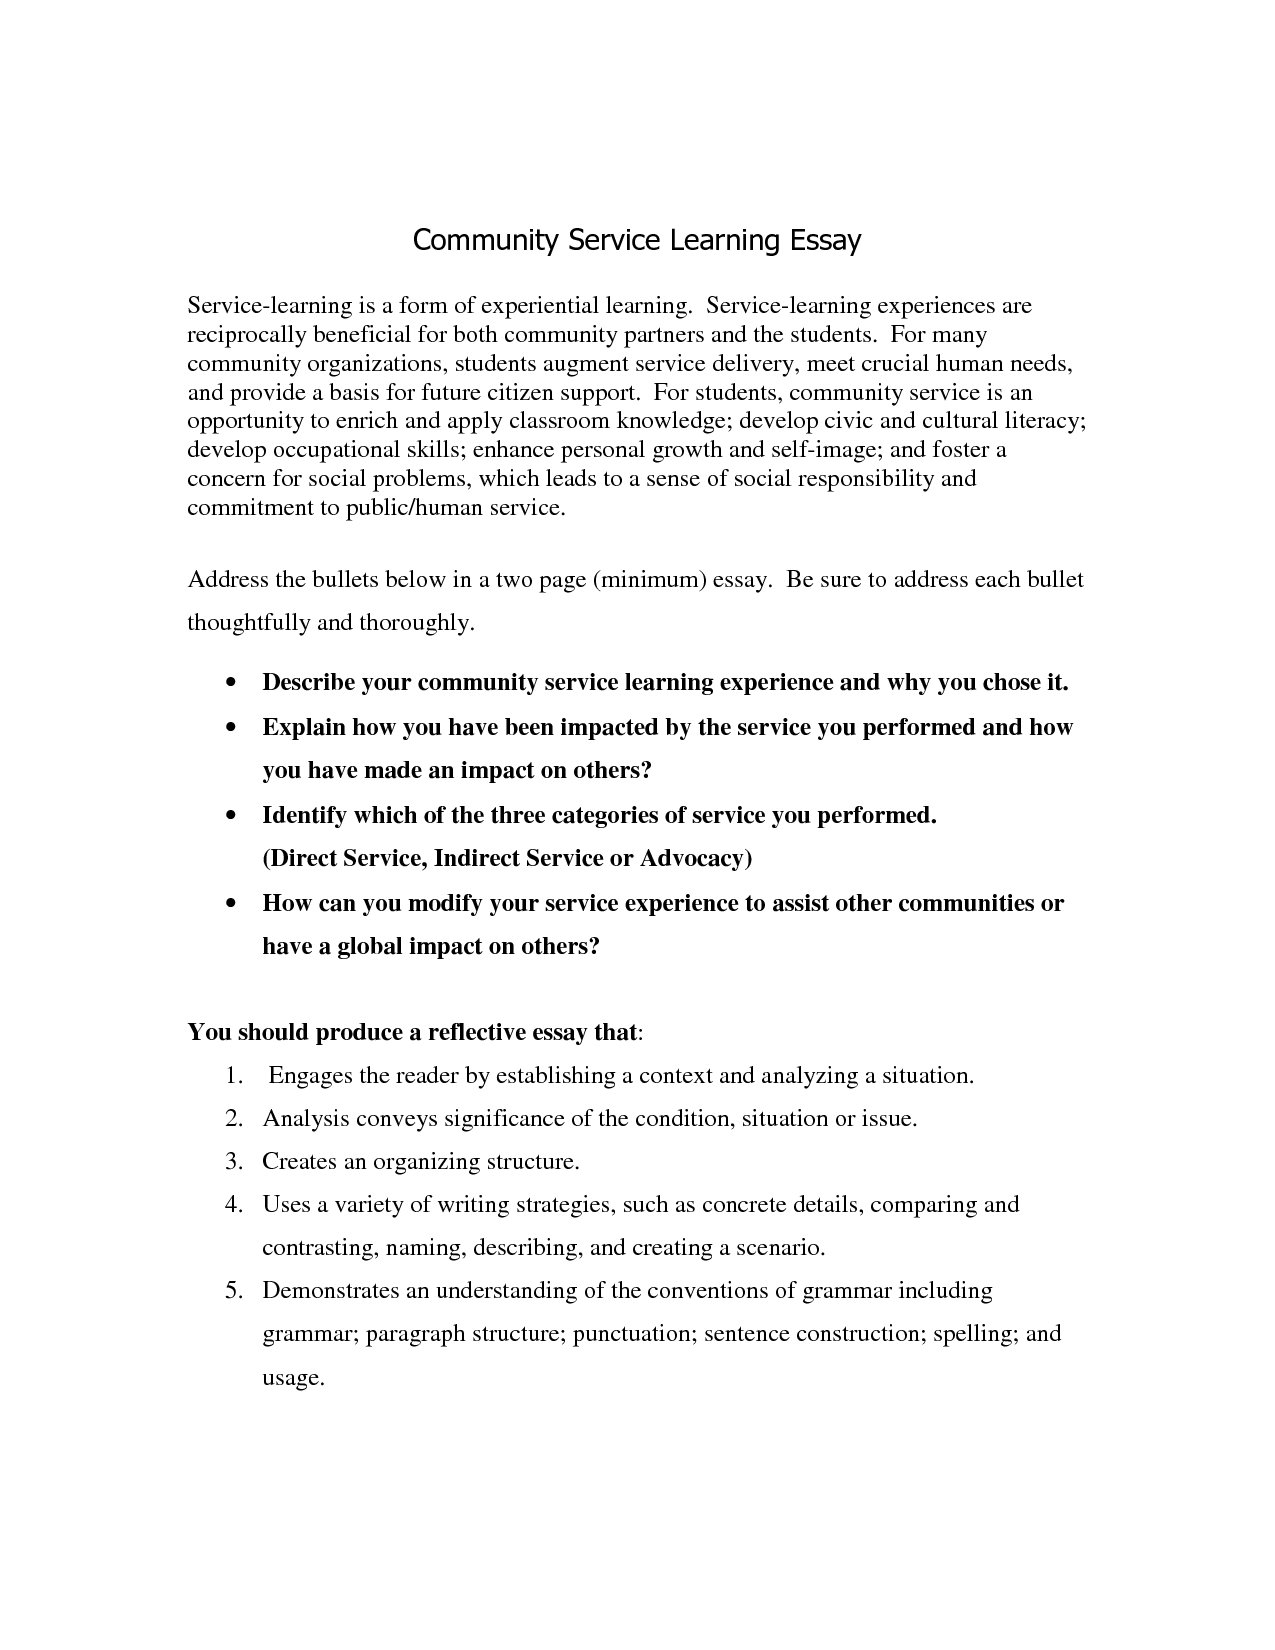 Essay About Community